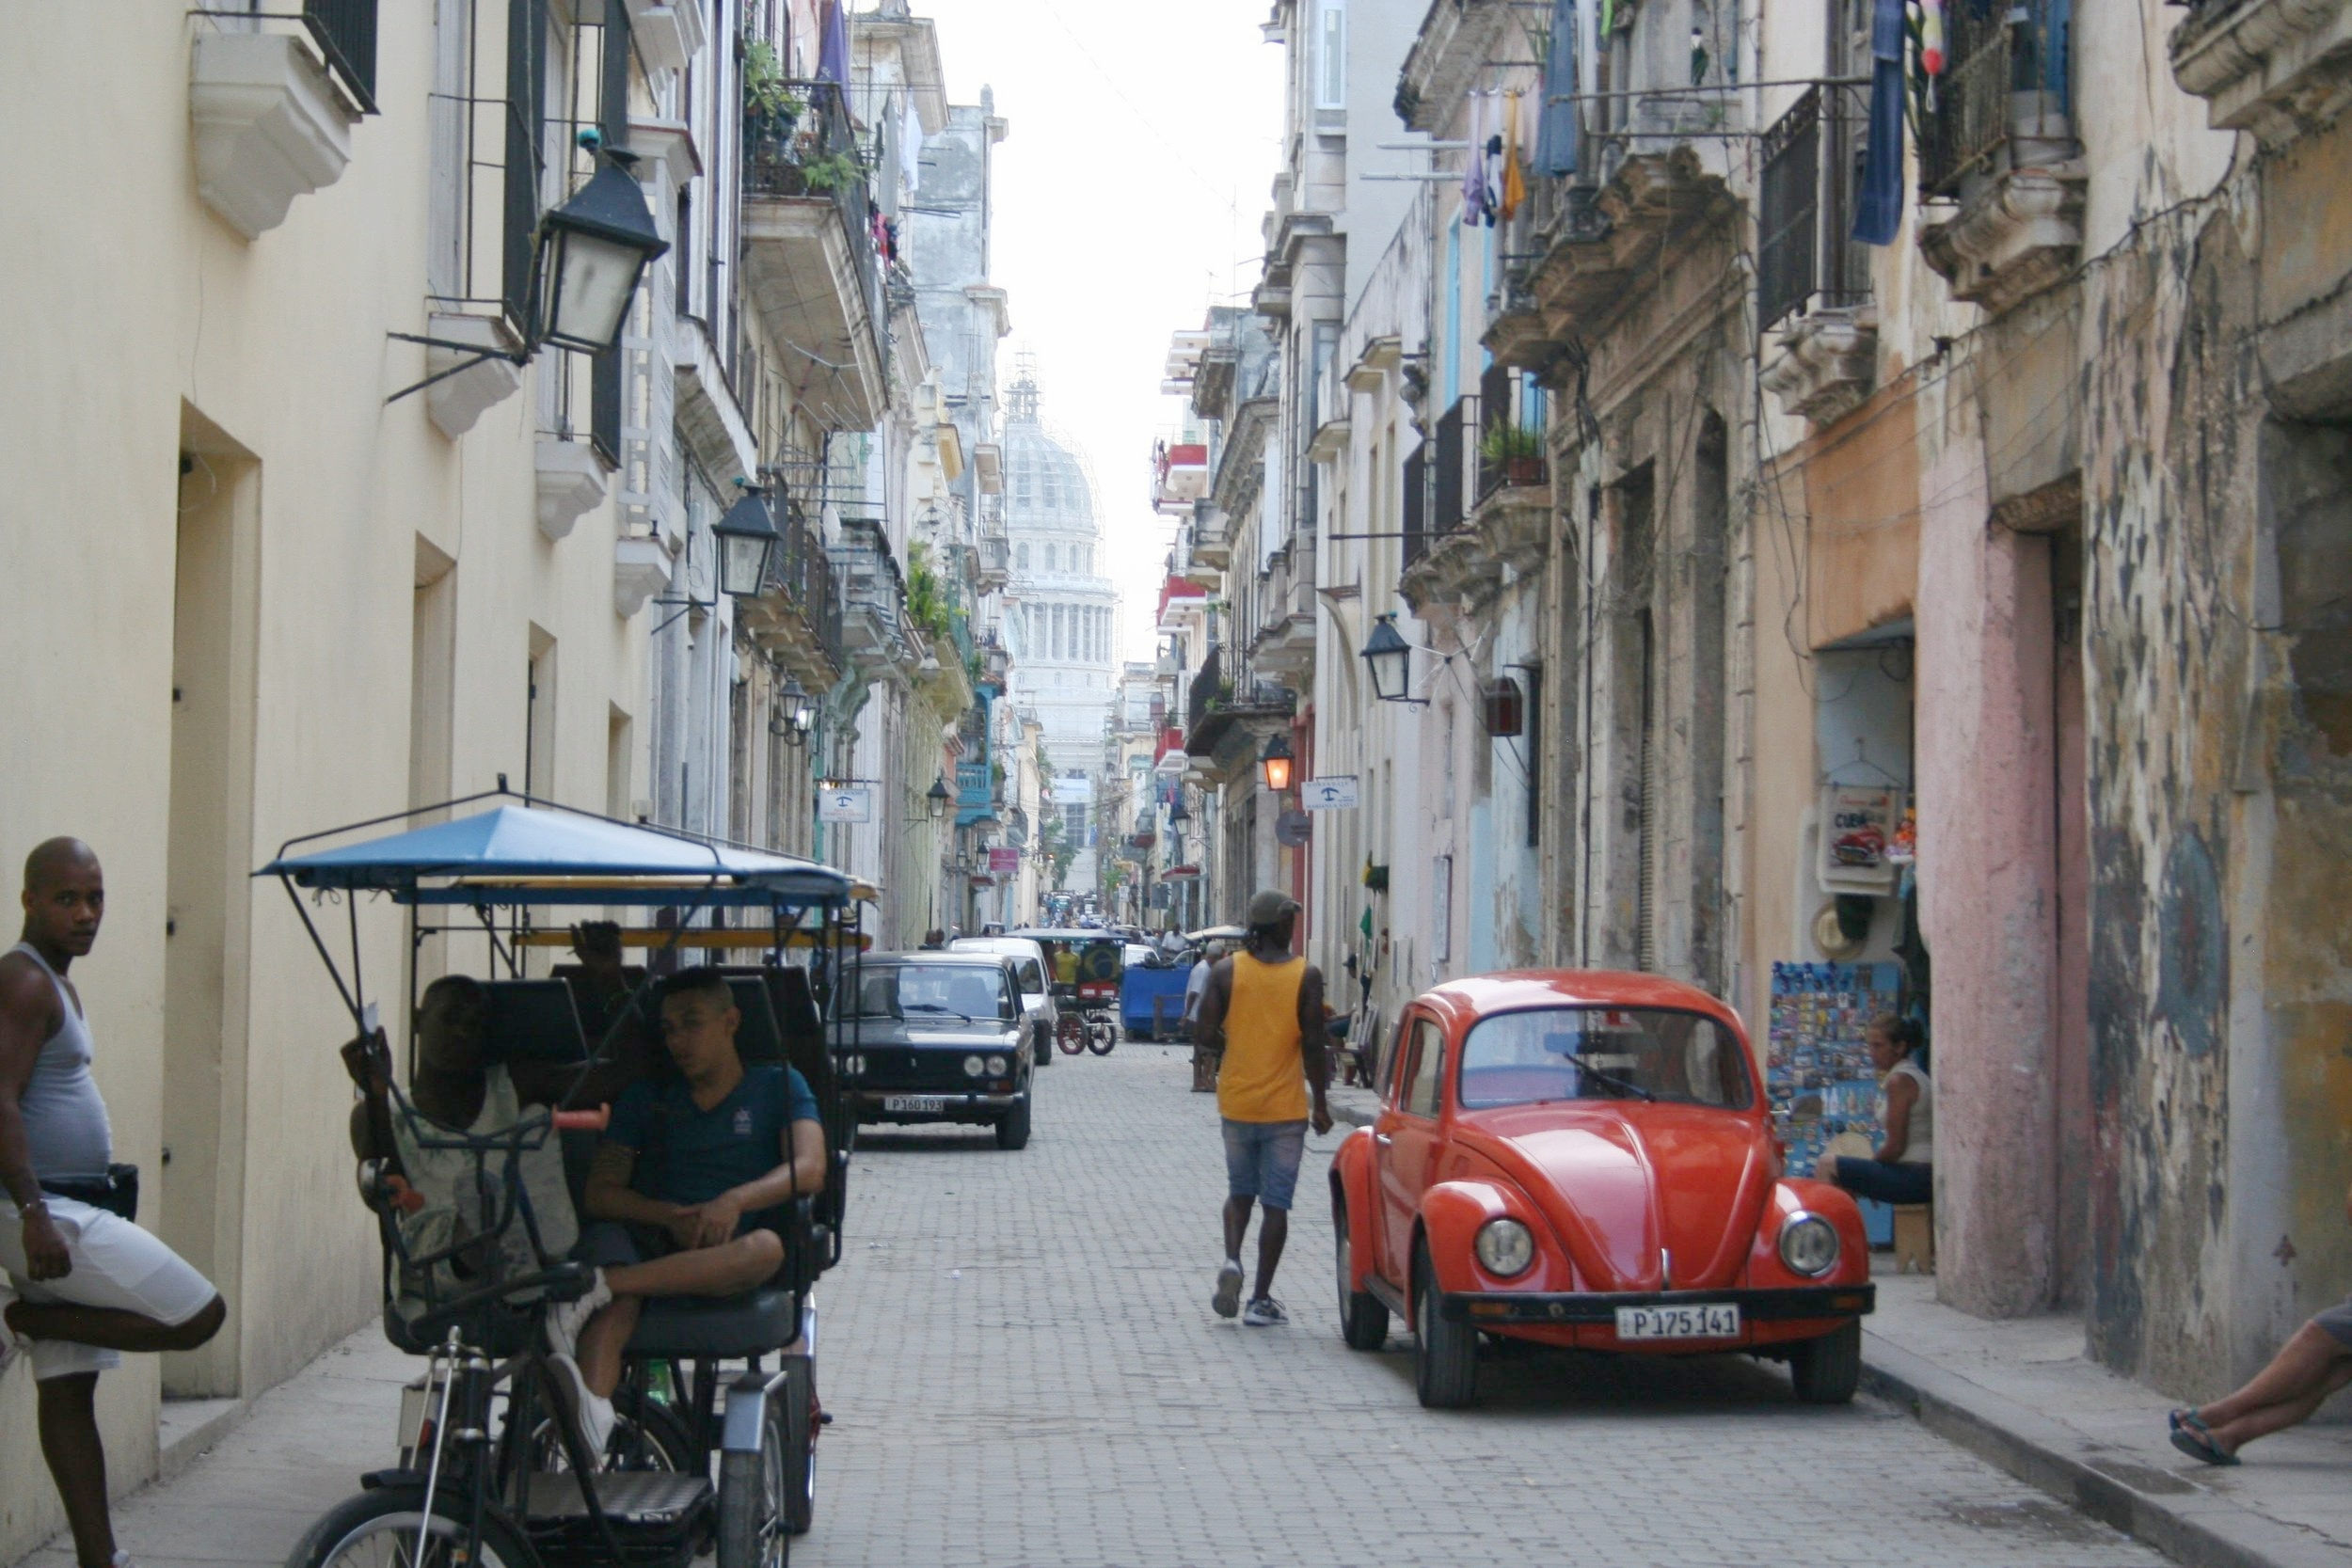 ECONOMICS OF CHANGE: BUSINESS & CULTURE IN CUBA - After six decades of